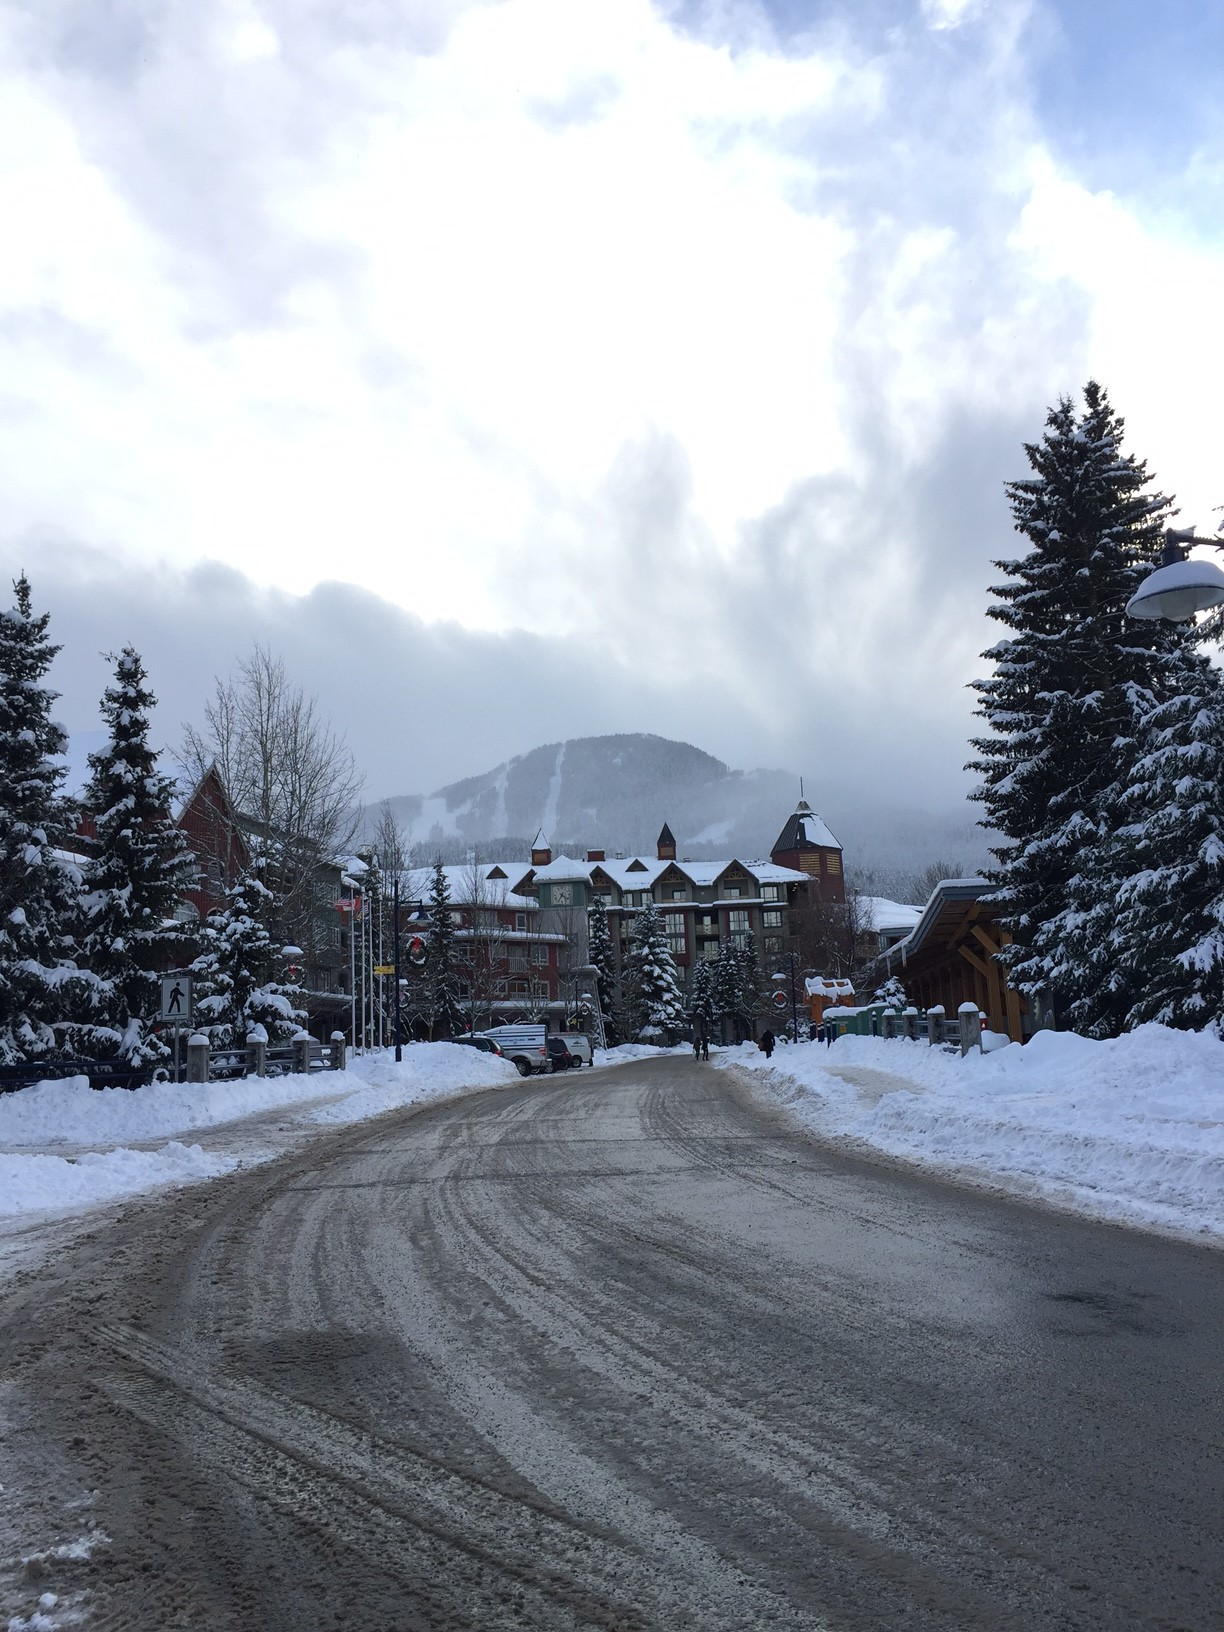 The road leading to Whistler Village, the central neighbourhood of the town of Whistler and Blackcomb Mountains.